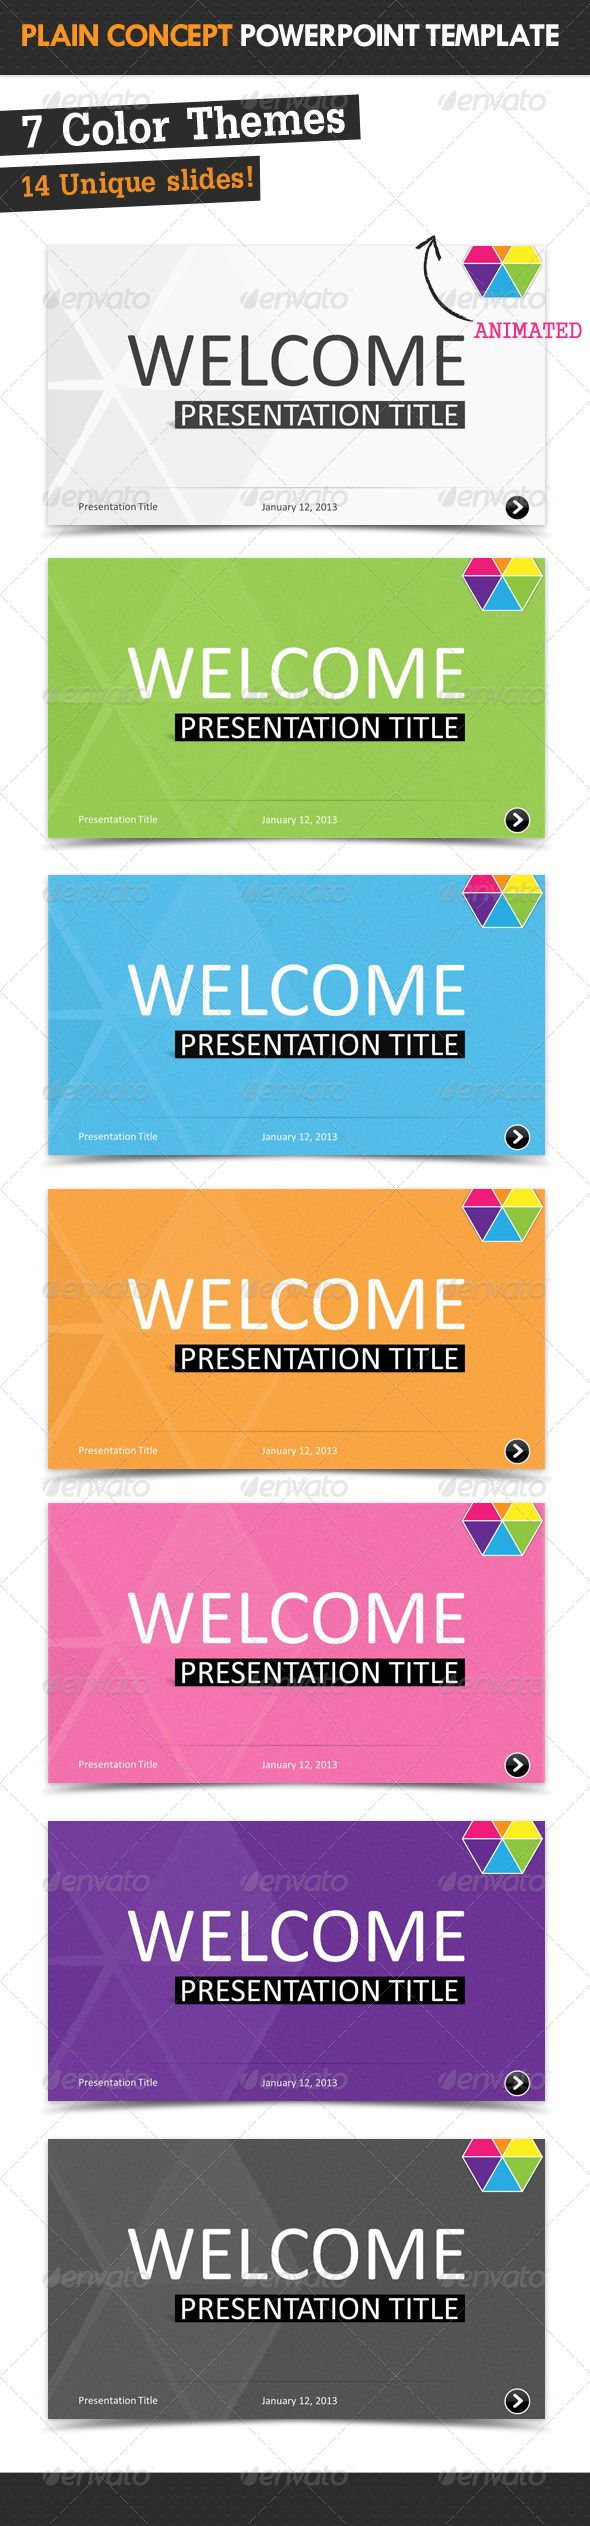 Amazing 1 Button Template Small 10 Tips For Writing A Resume Rectangular 100 Free Resume Templates 12 Hour Schedule Template Old 15 Year Old Resume Sample White17 Worst Things To Say On Your Resume Business Insider 25  Best Ideas About Powerpoint Demo On Pinterest | Présentation ..